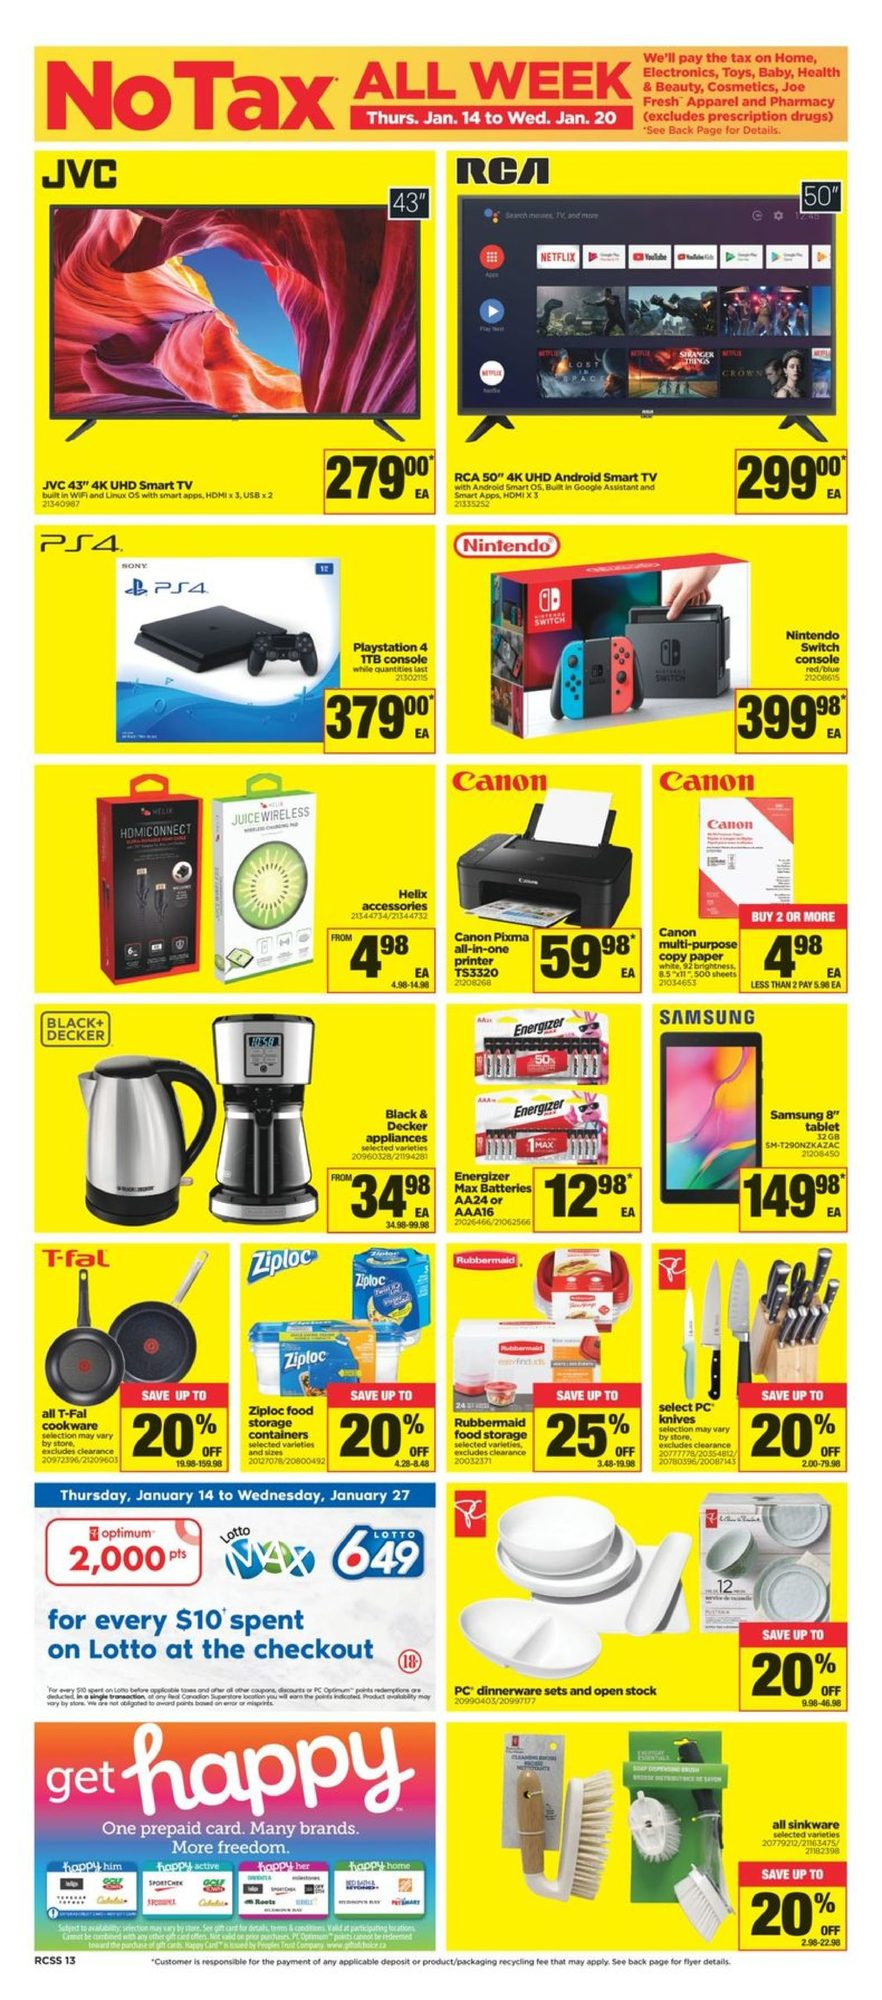 Real Canadian Superstore - Weekly Flyer Specials - Page 13